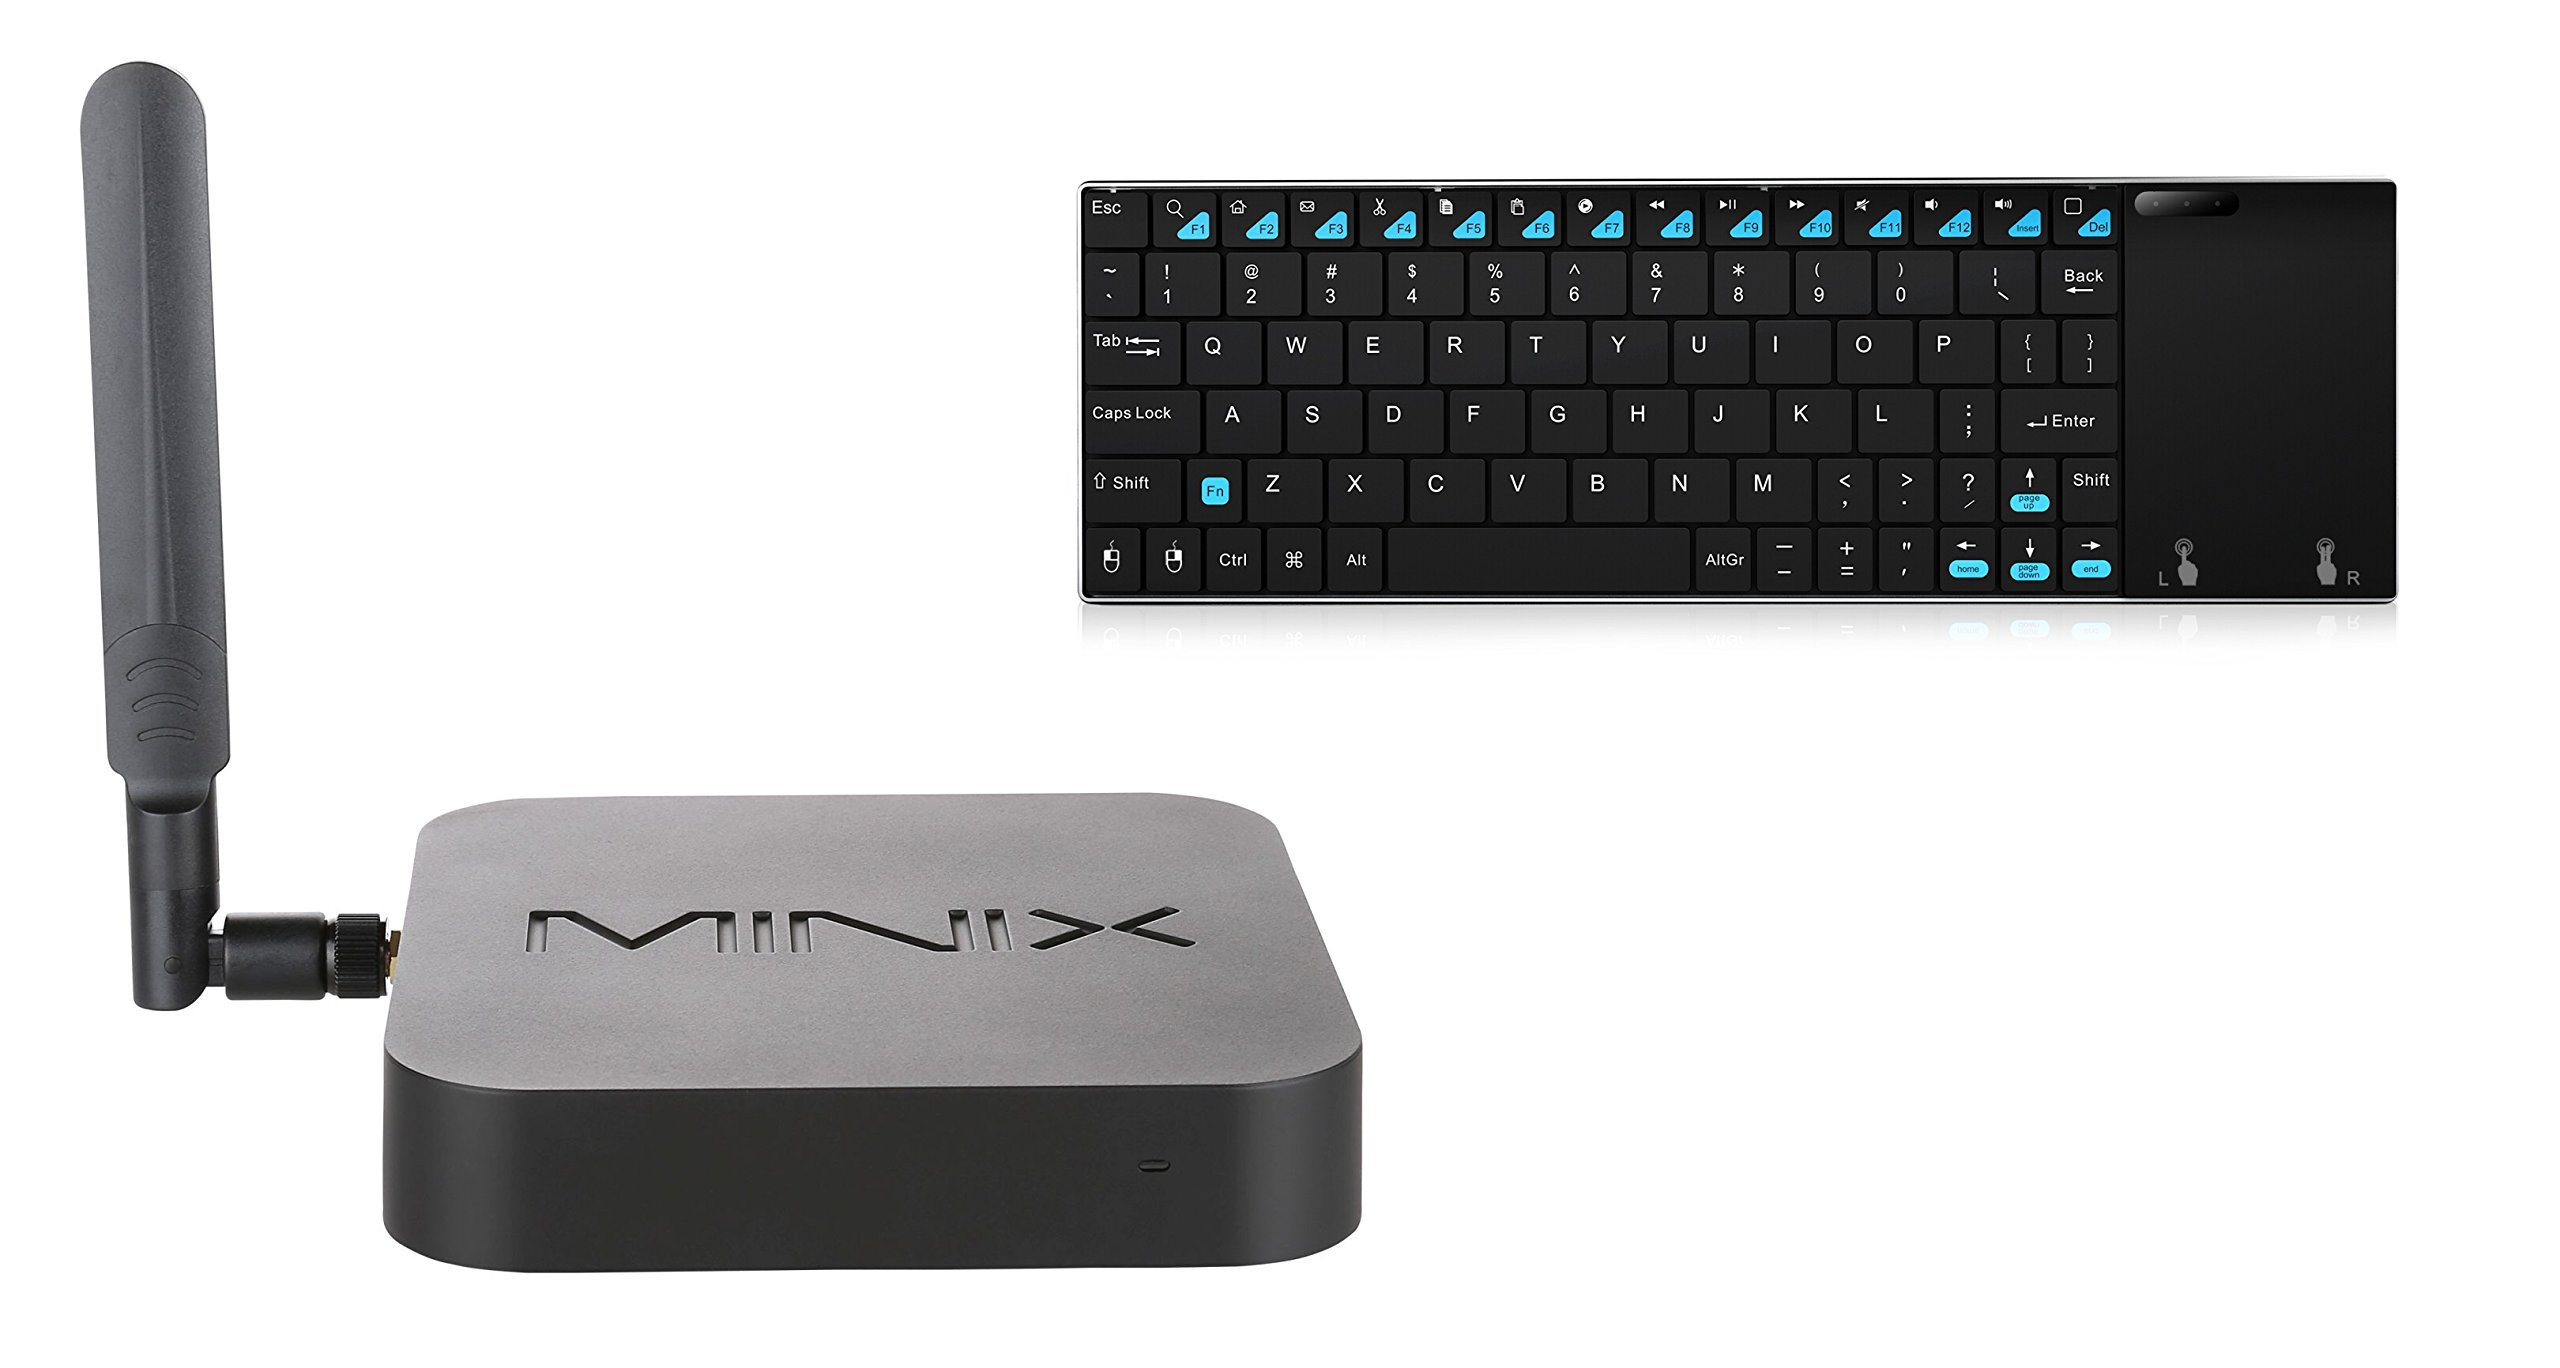 MINIX NEO Z83-4 + MINIX NEO K2, Intel Cherry Trail Fanless Mini PC Windows 10 (64-bit) & Wireless Keyboard and Touchpad. Sold Directly by MINIX Technology Limited. by MINIX